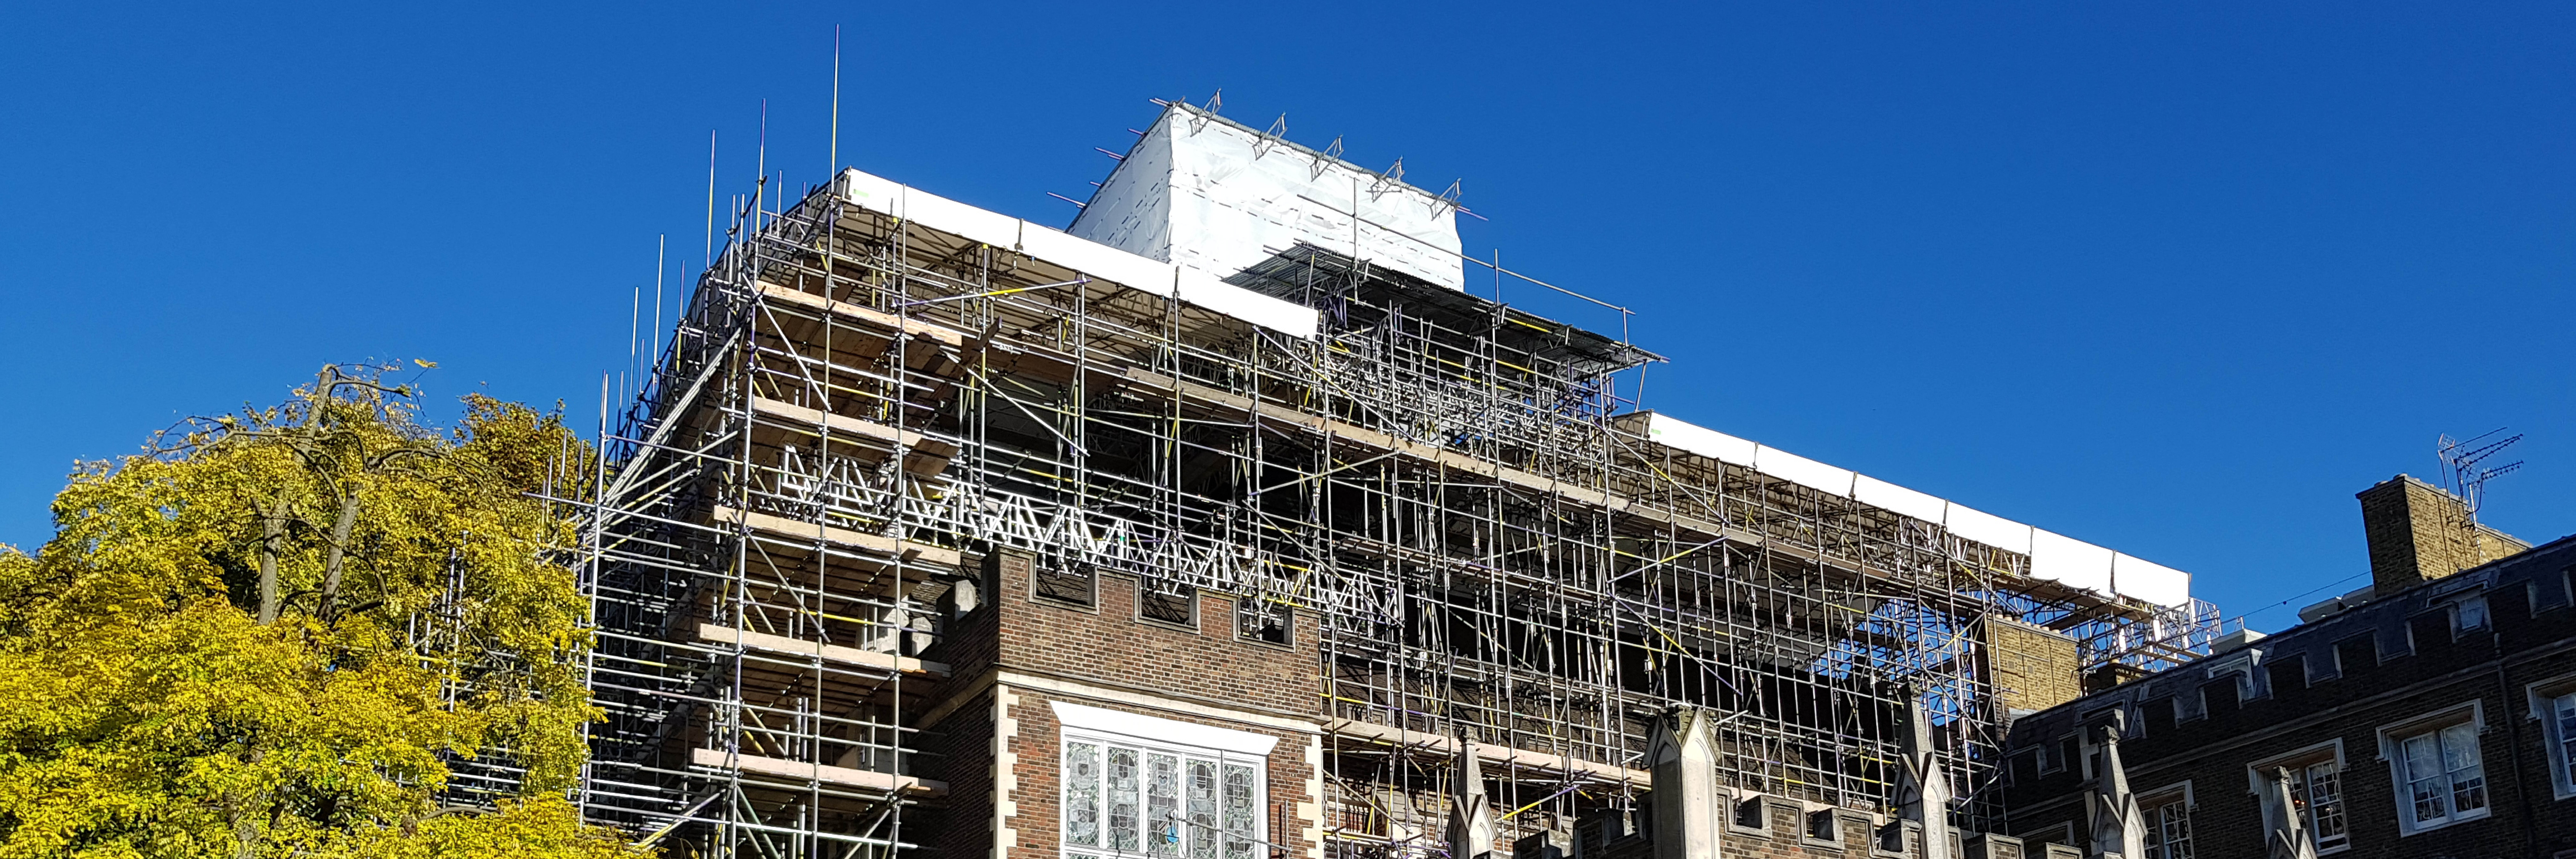 Temporary Roofing - MIDDLE TEMPLE